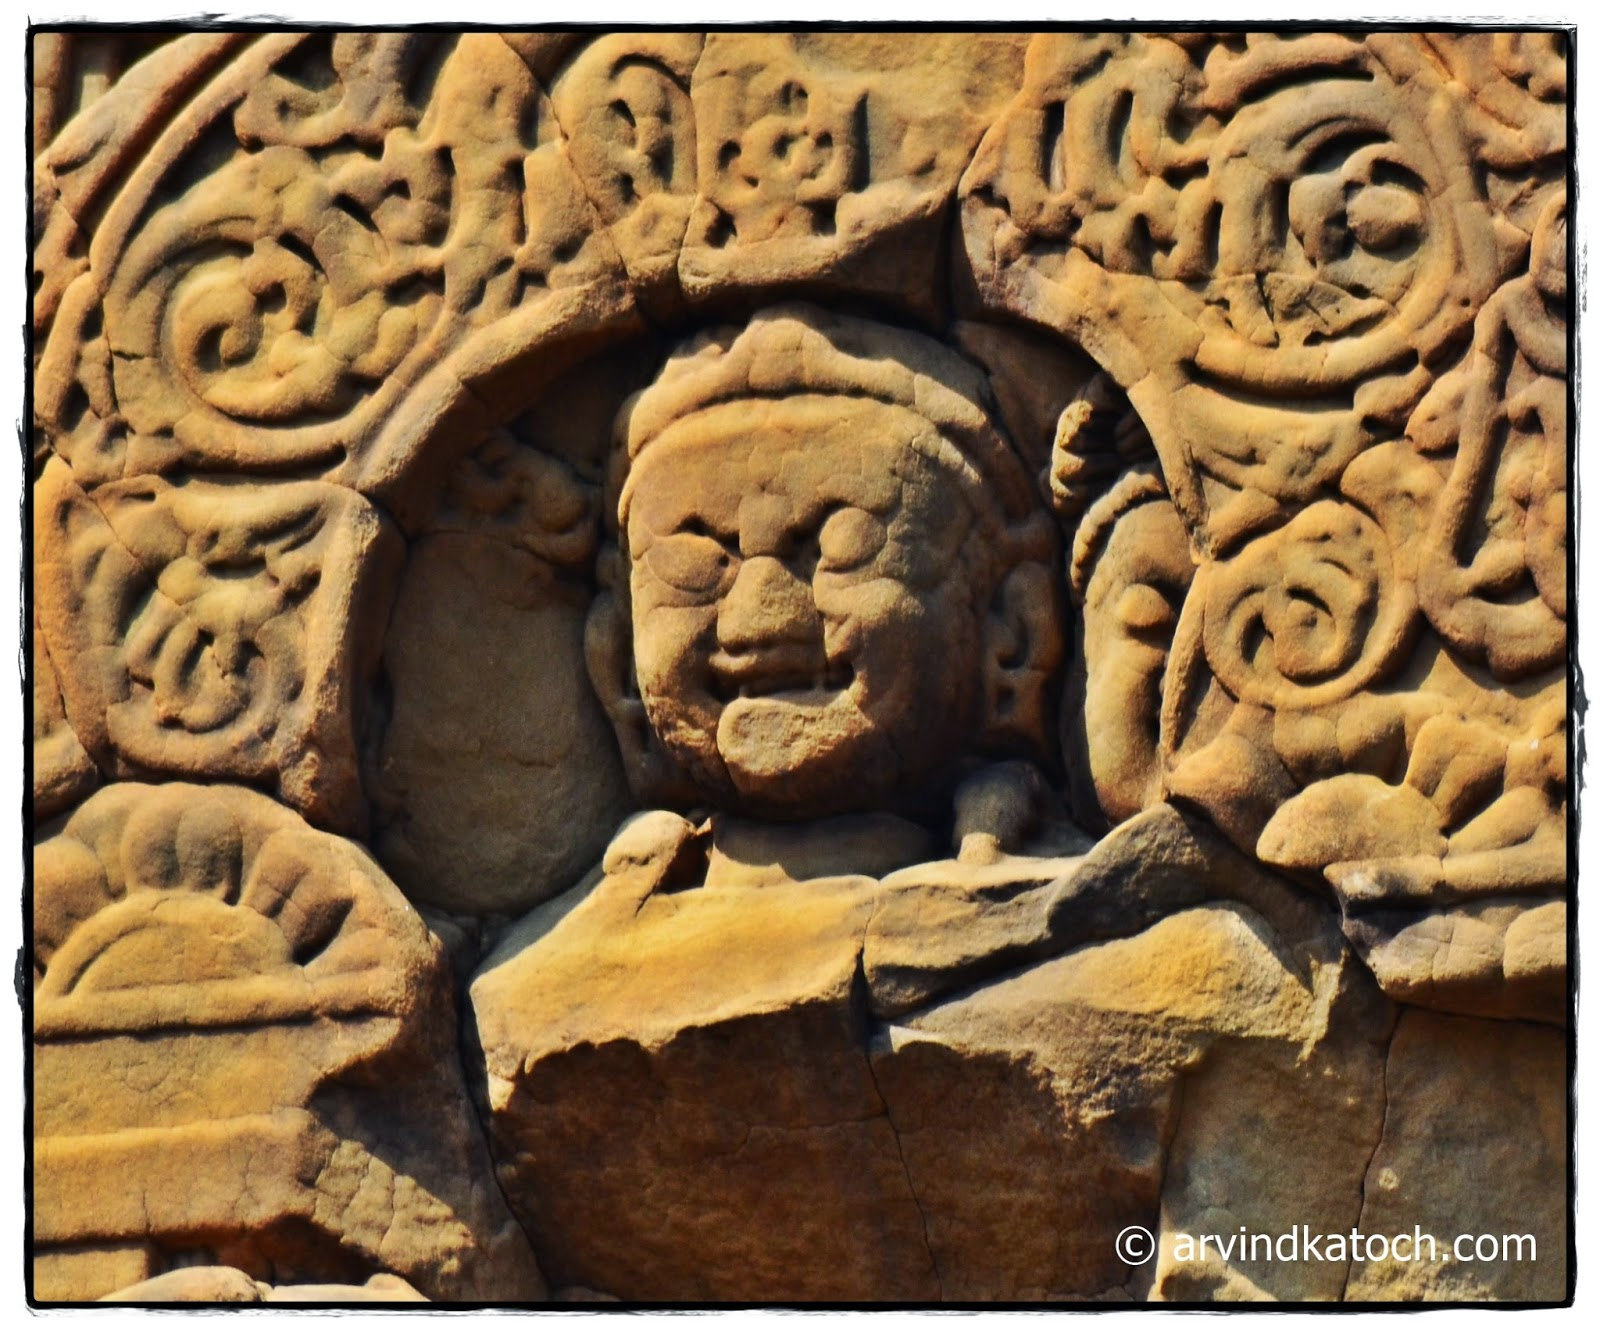 India, Laughing, Buddha, Masroor Rock, Temple